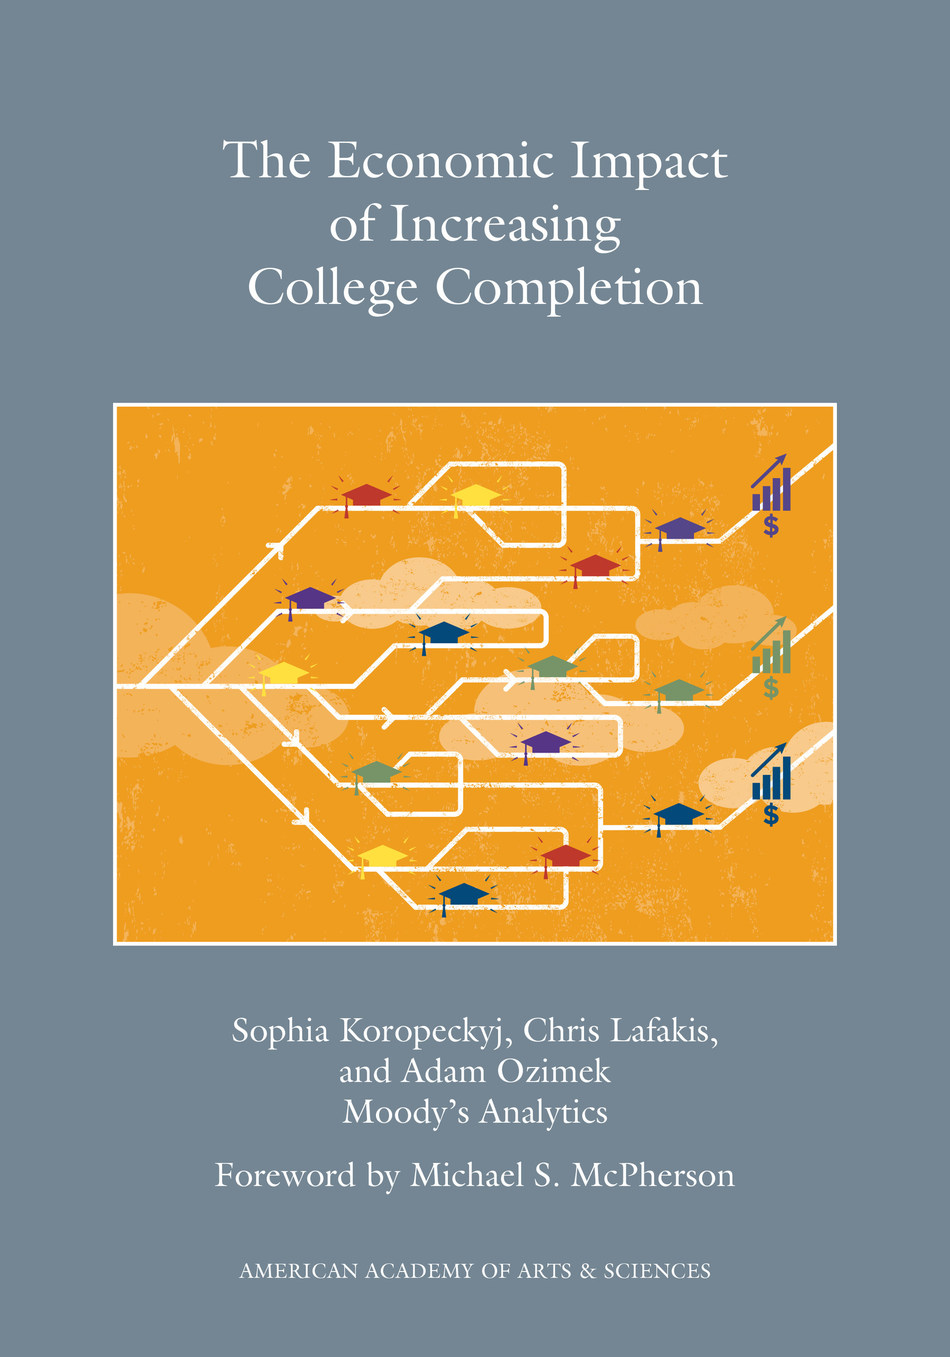 """""""The Economic Impact of Increasing College Completion,"""" authored by Sophia Koropeckyj, Chris Lafakis and Adam Ozimek of Moody's Analytics. This is the latest publication from the Commission on the Future of Undergraduate Education, a project of the American Academy of Arts & Sciences."""